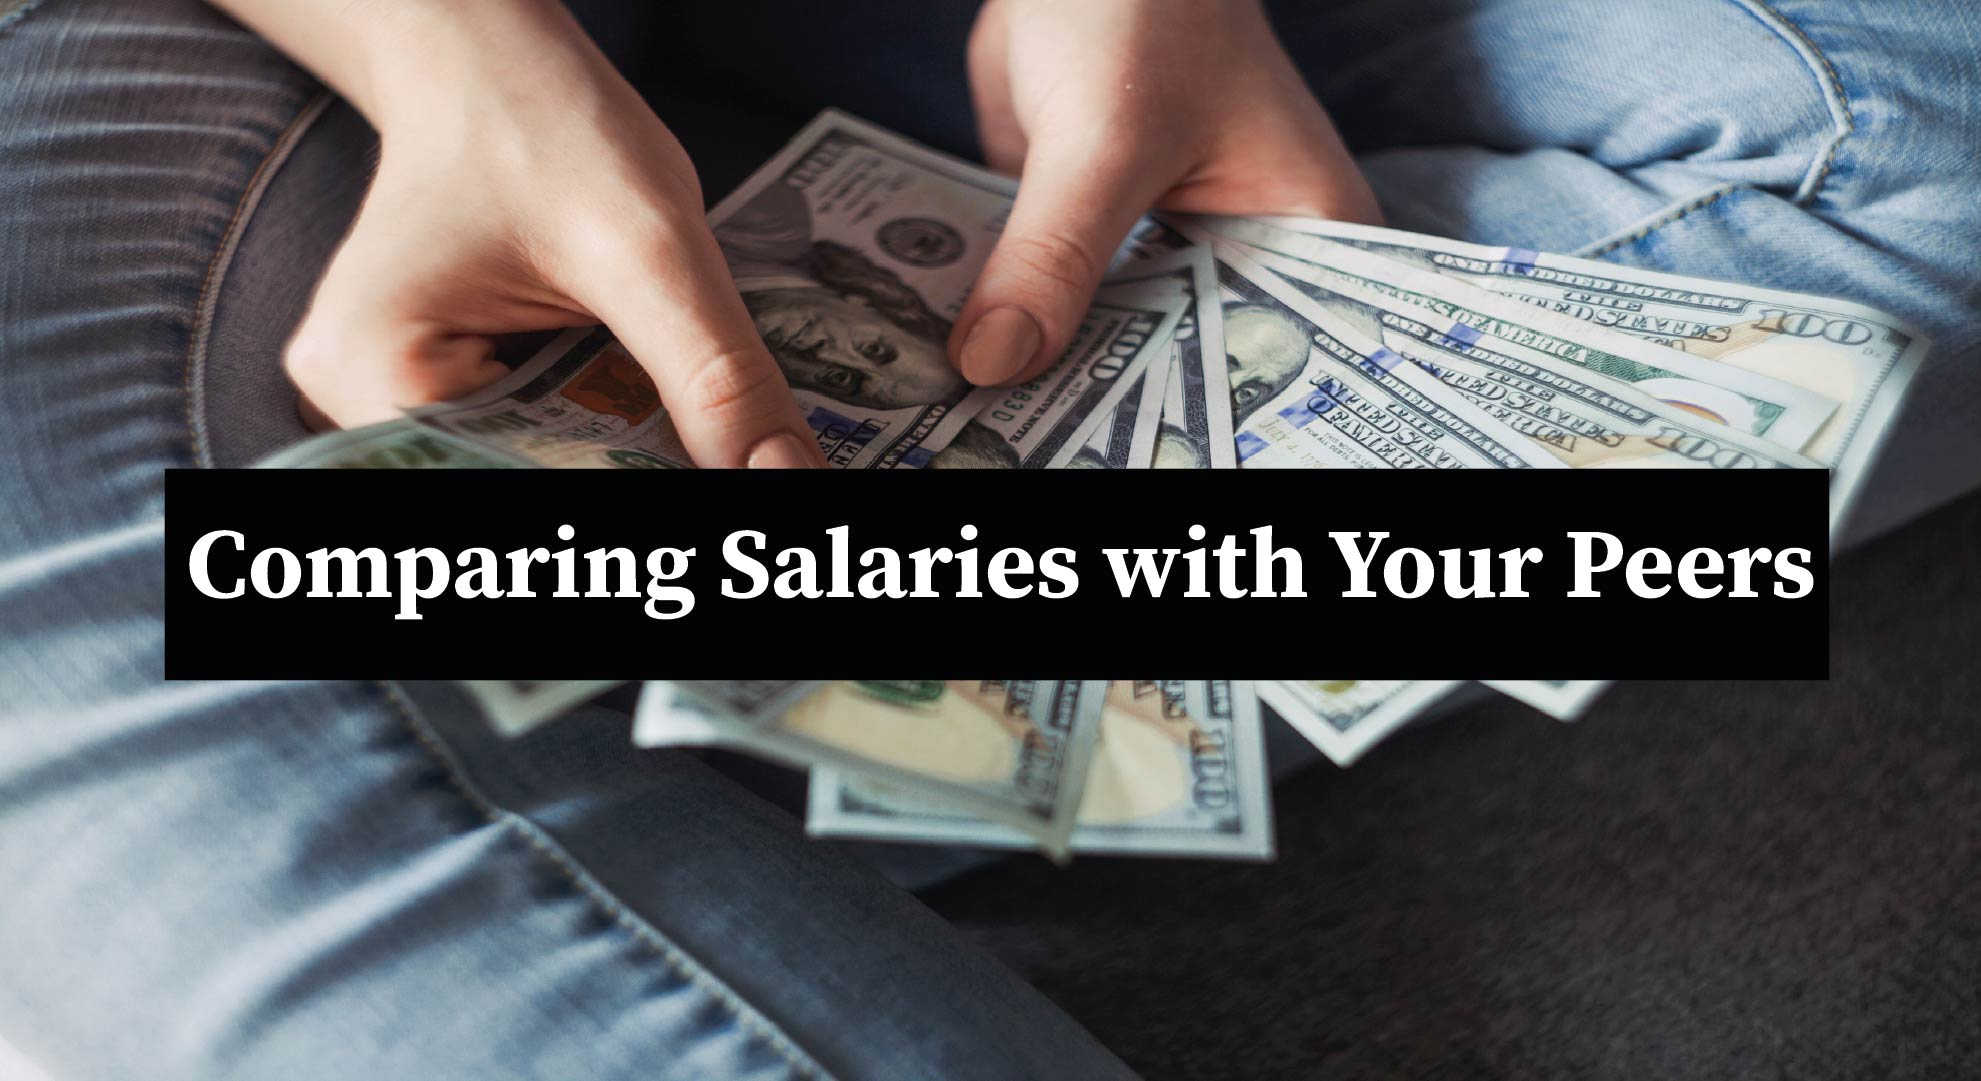 The Ultimate Guide to Comparing Salaries with Your Peers